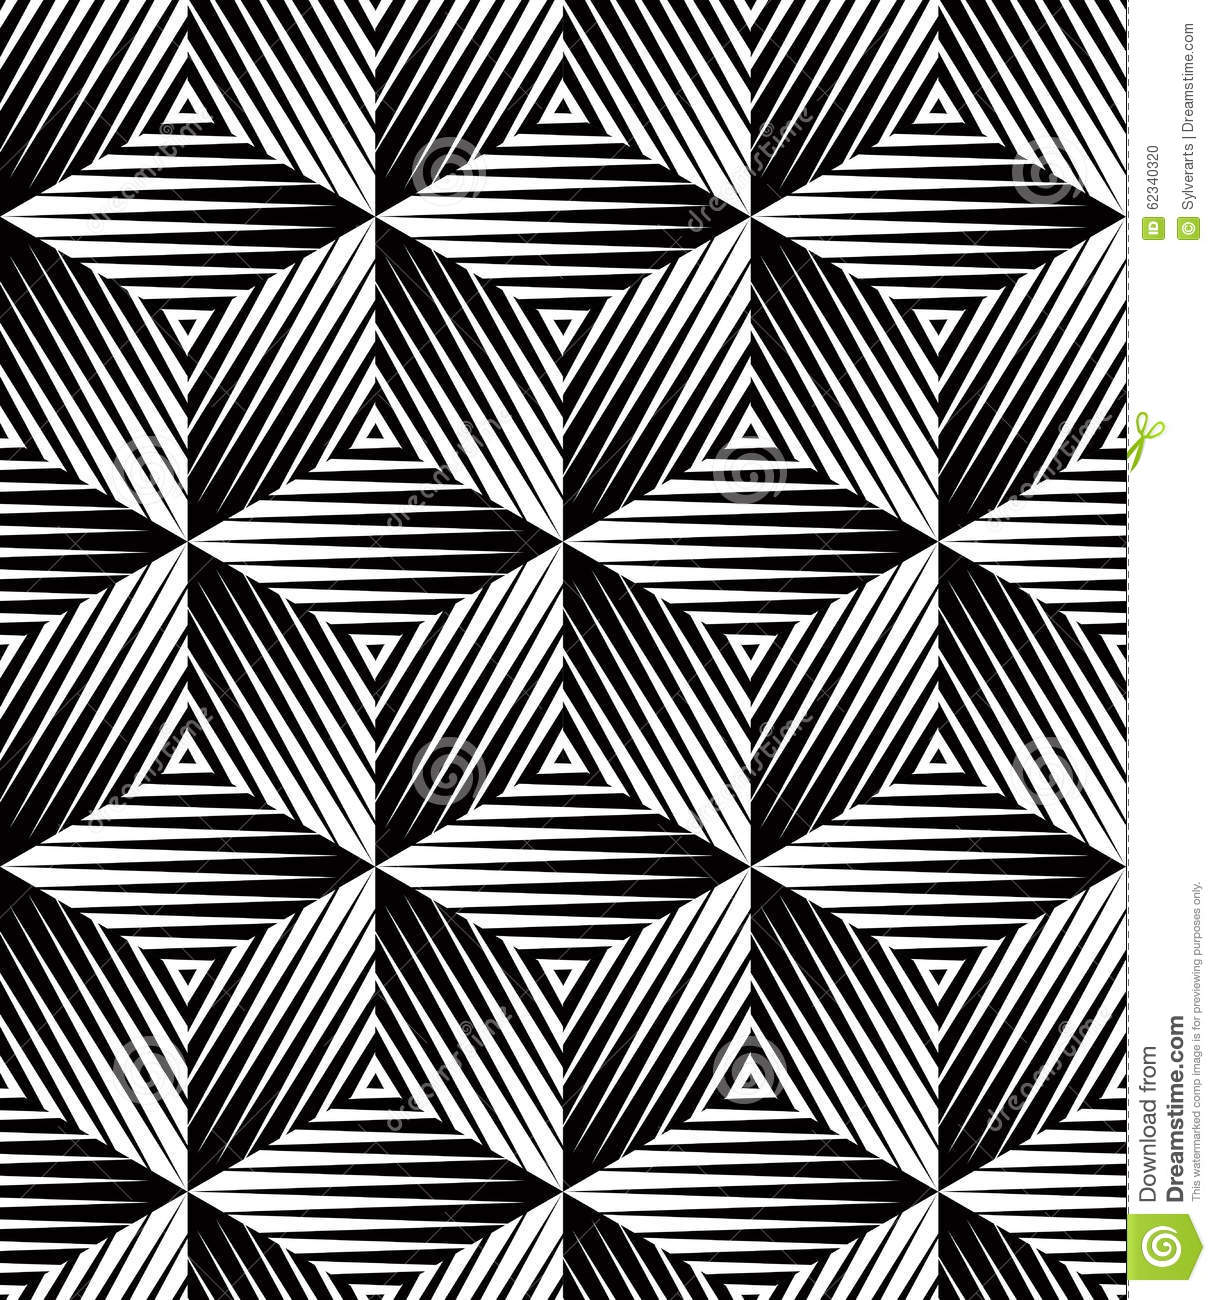 Black And White Illusive Abstract Geometric Seamless 3d Pattern